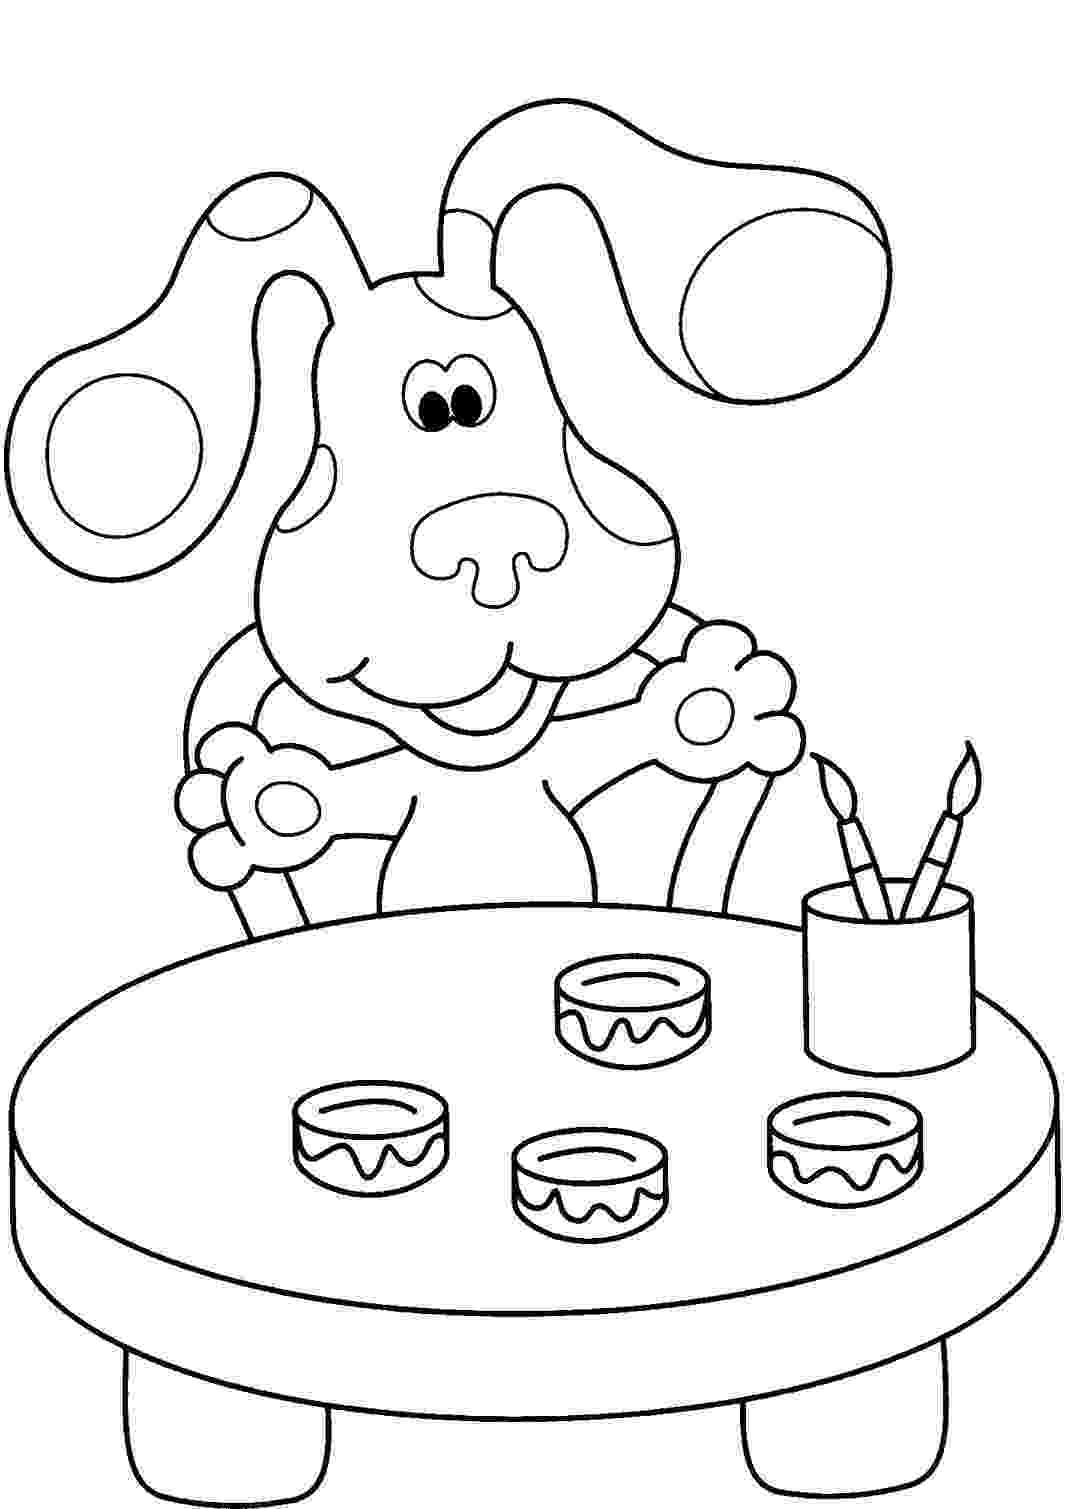 coloring book printable arthur coloring pages to download and print for free coloring book printable